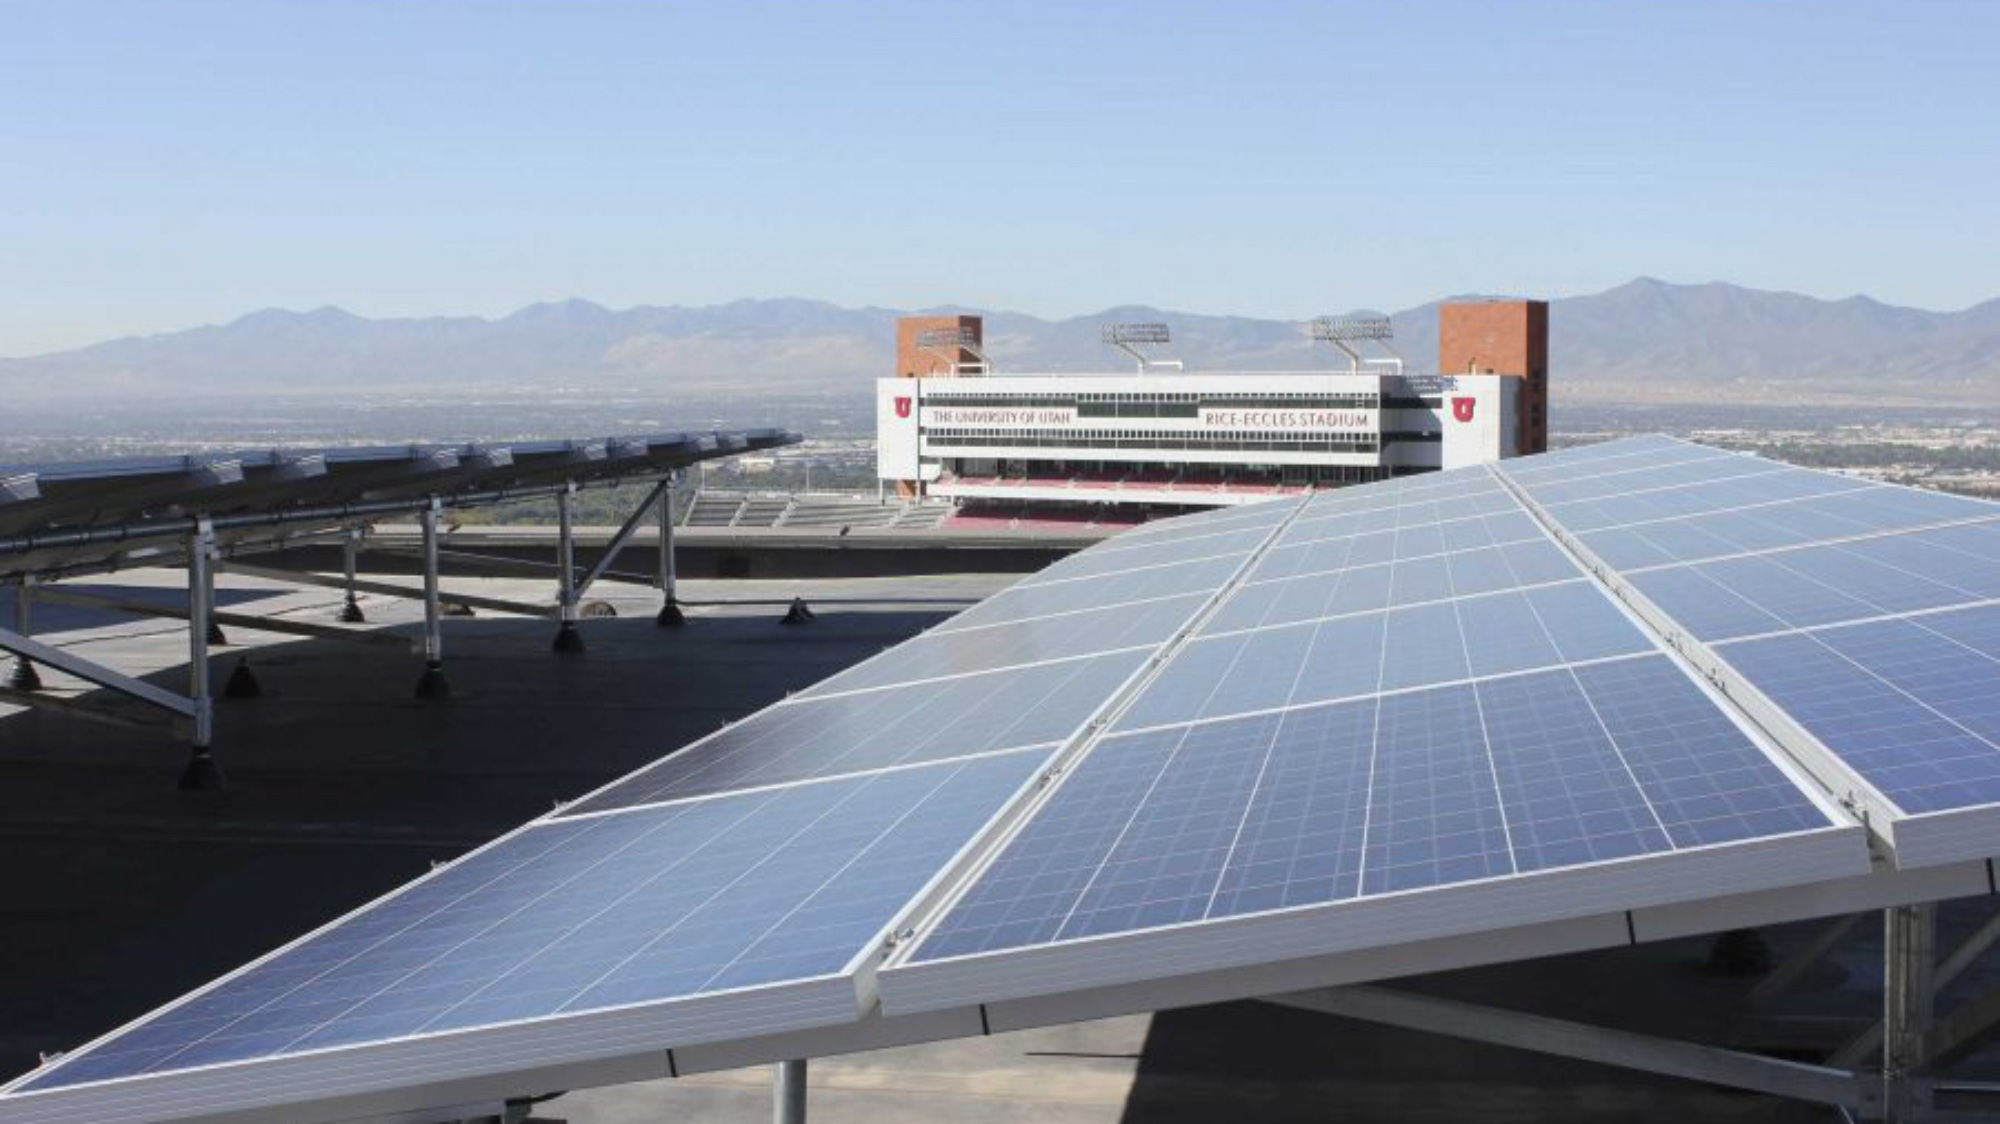 Solar panels on the roof of the J. Willard Marriott Library looking west with the Rice-Eccles Stadium and Salt Lake Valley in the background.